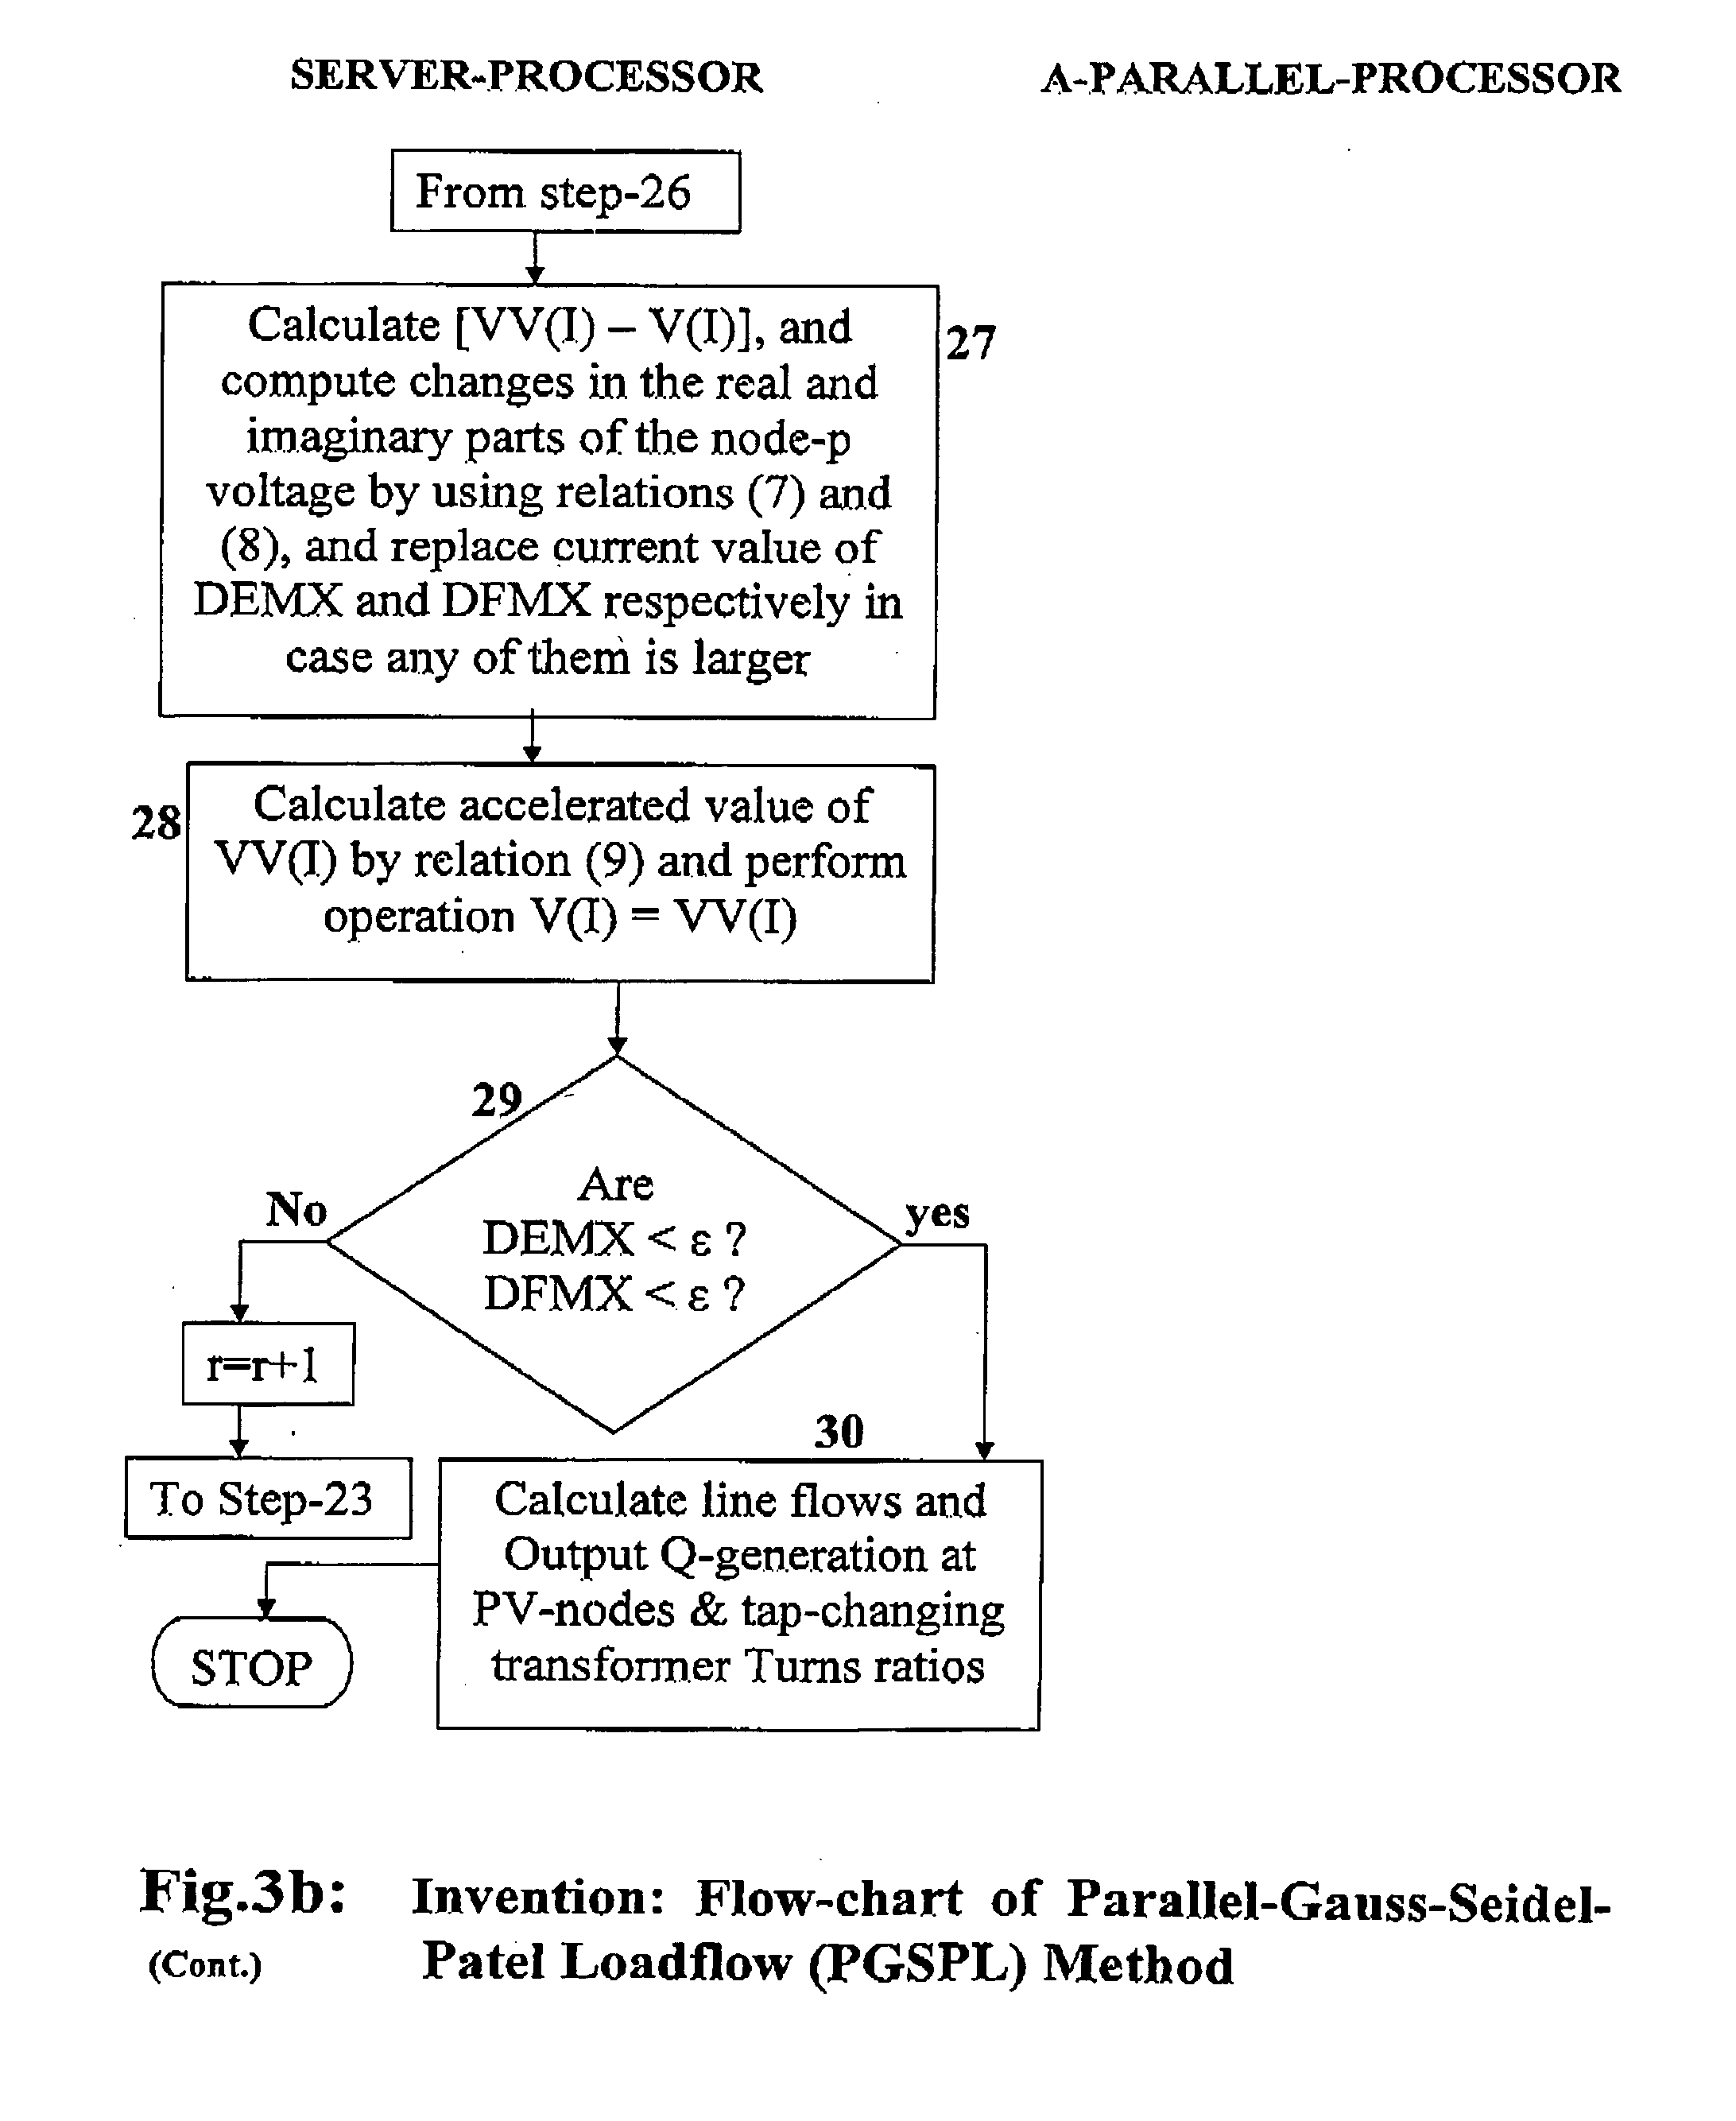 Gauss seidel flowchart create a flowchart flow chart of the proposed method patent drawing nvjuhfo Image collections